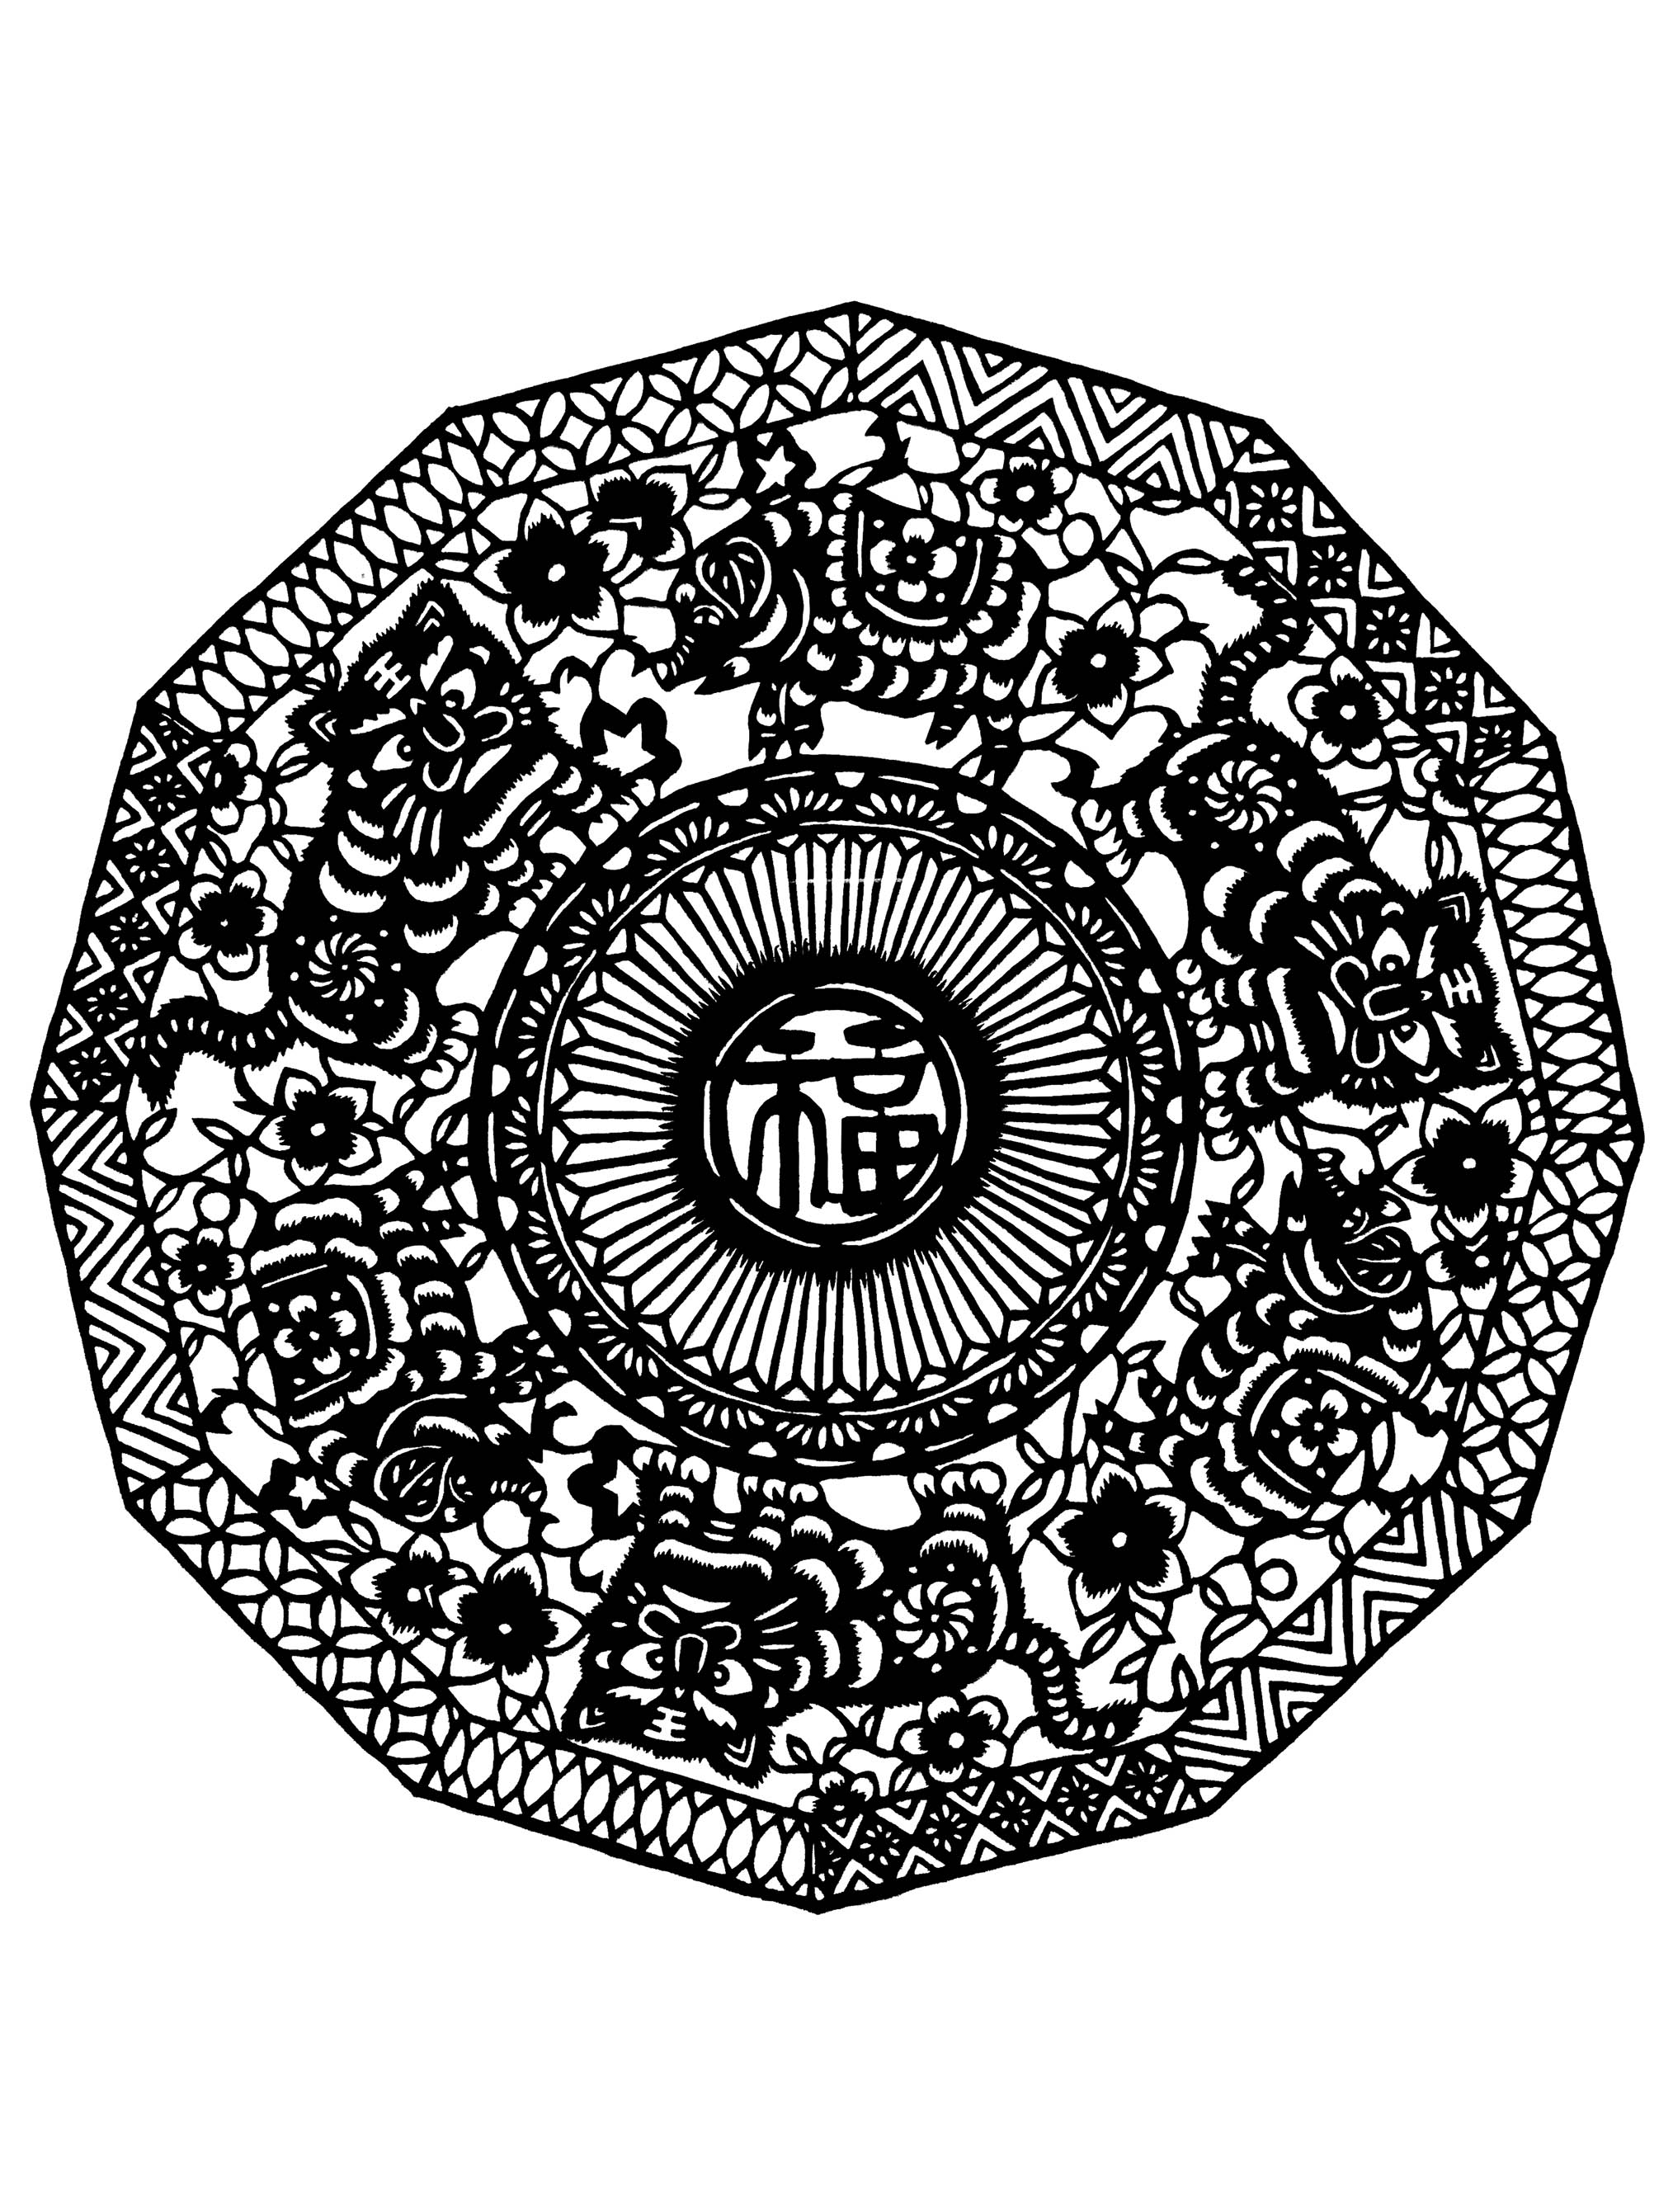 Mandala inspired by chinese patterns and drawings